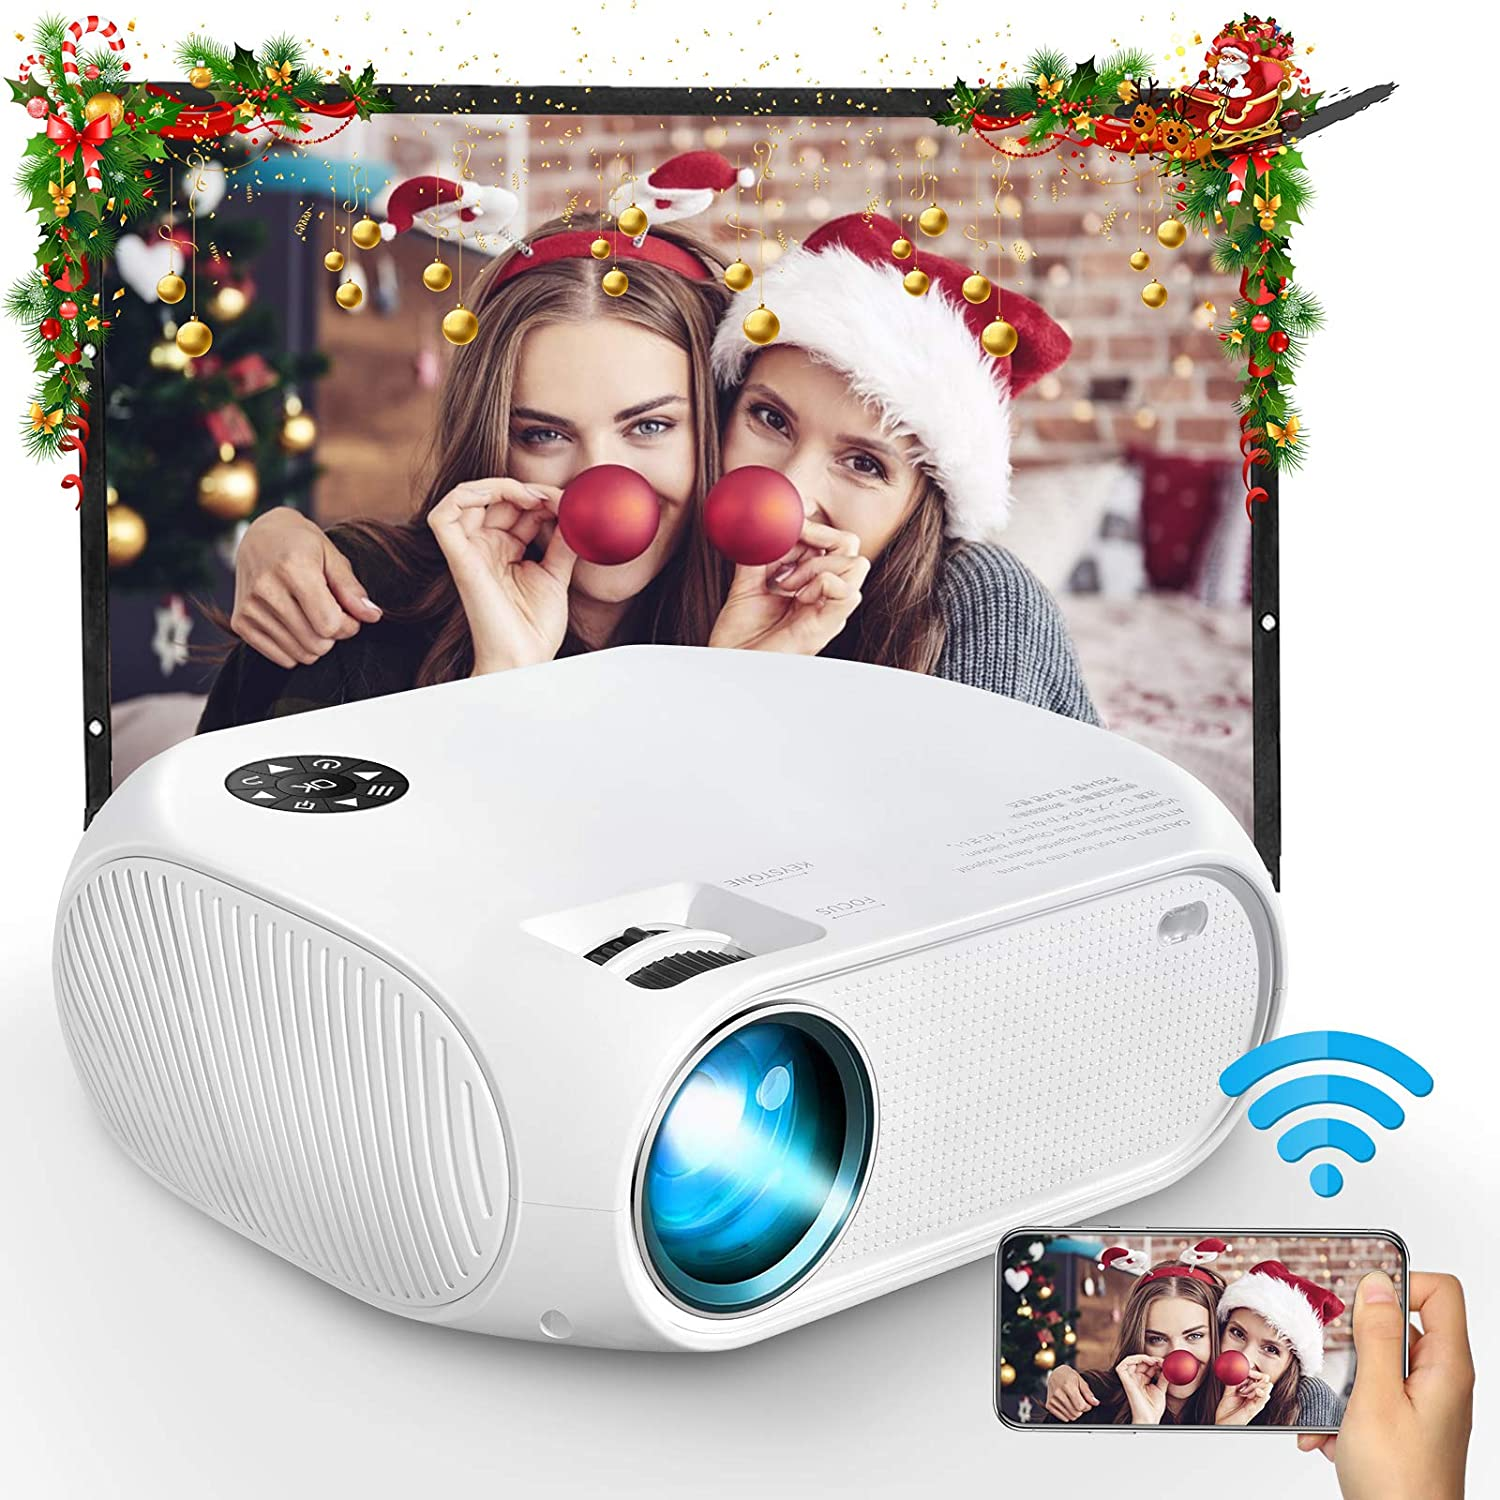 "WiFi Projector, iBosi Cheng Mini Portable Movie Projector with Full HD 1080P, 4500 Lux LCD Projector for 150"" Screen Home Theater Video Projector Compatible with HDMI,USB,VGA,AV,Android, Windows"